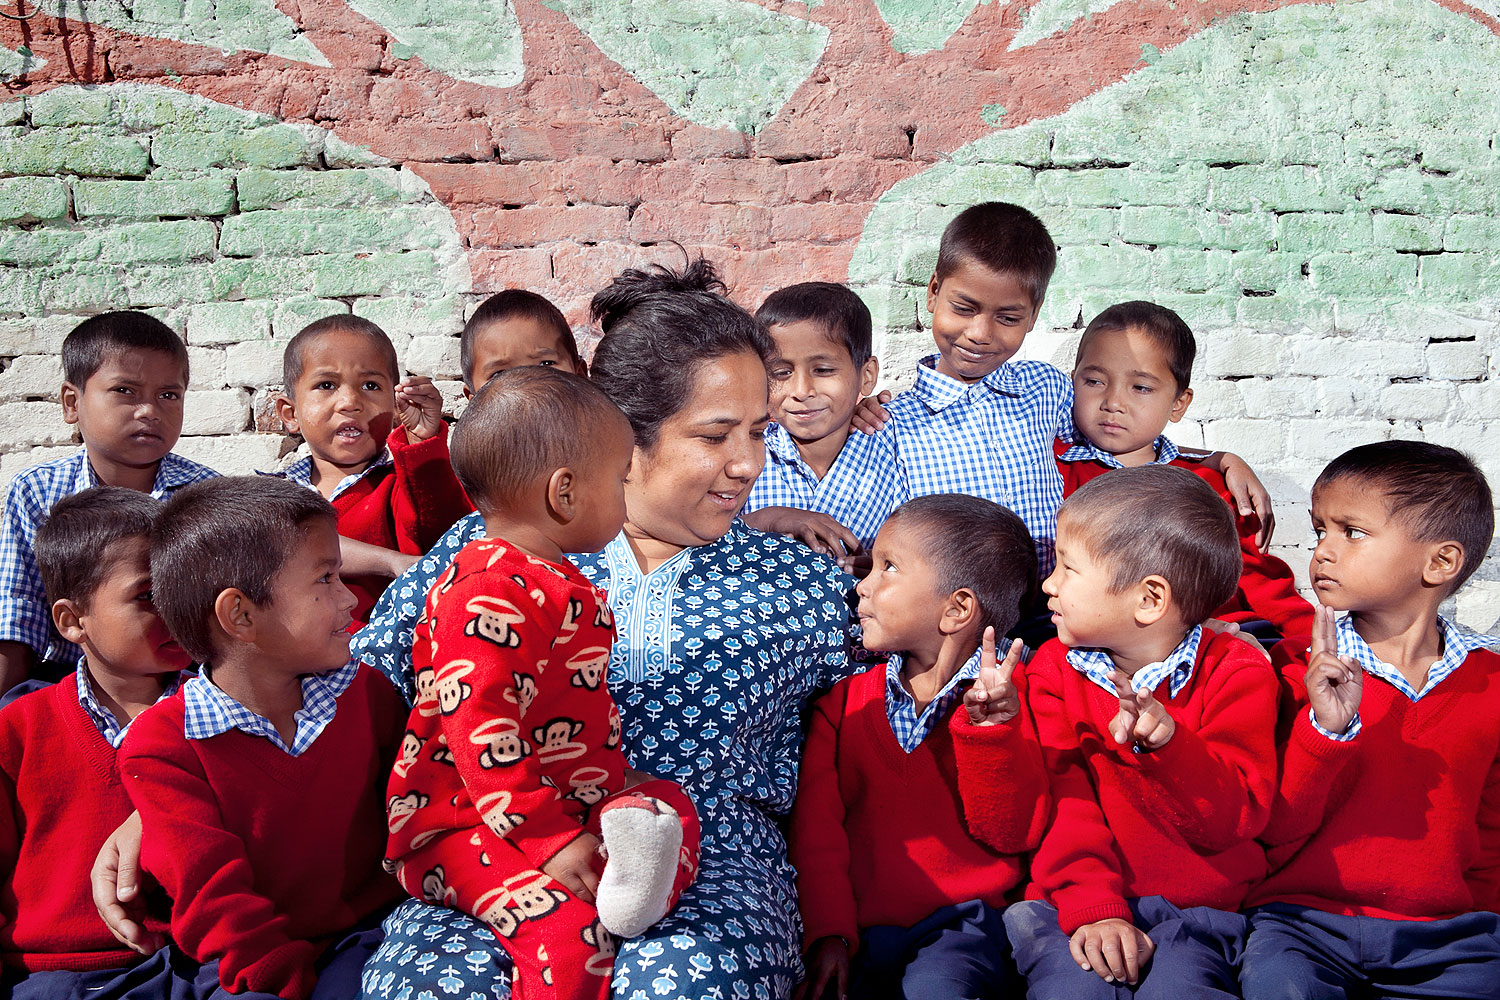 At Basnet's hostel, children learn everything from English and math to painting and taekwondo